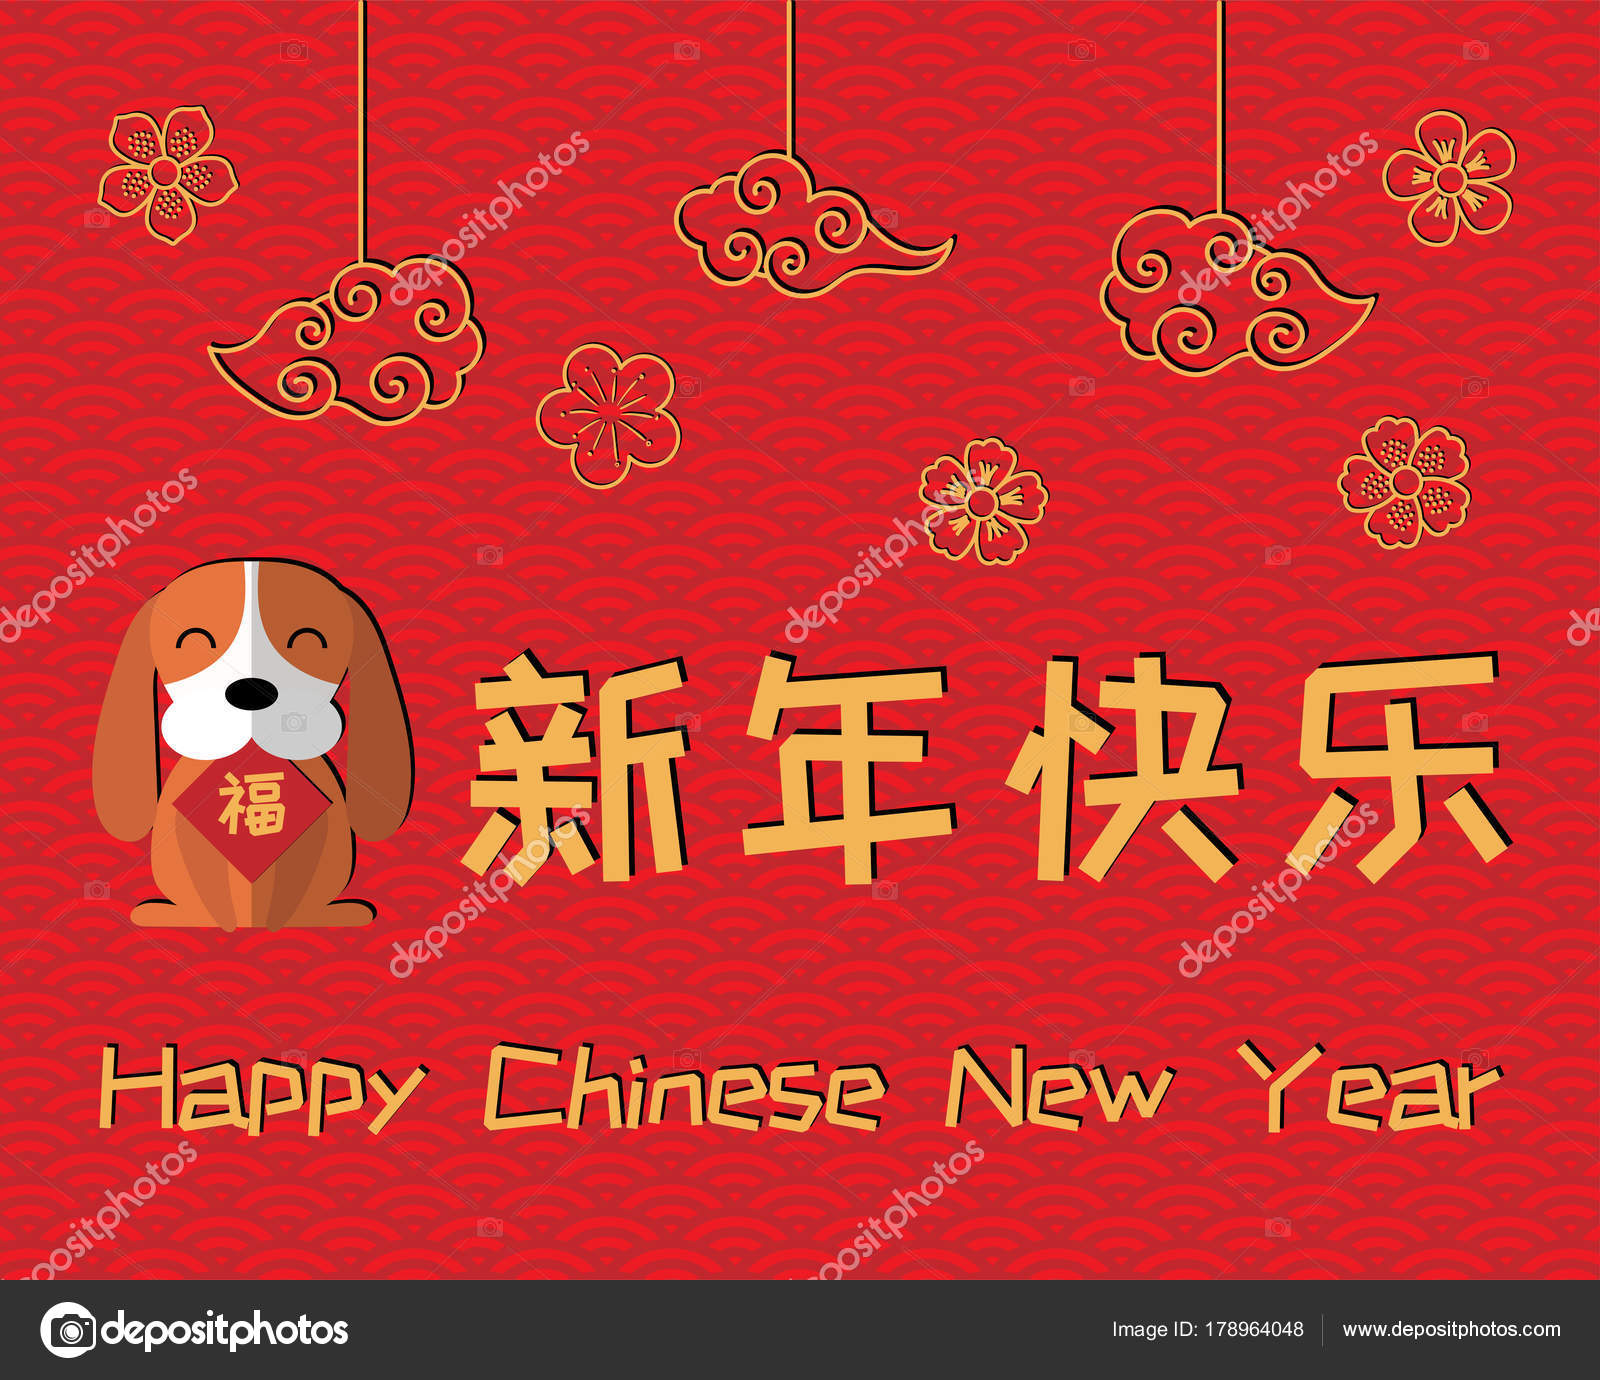 Text Message Greetings For Chinese New Year Laowai 6865612